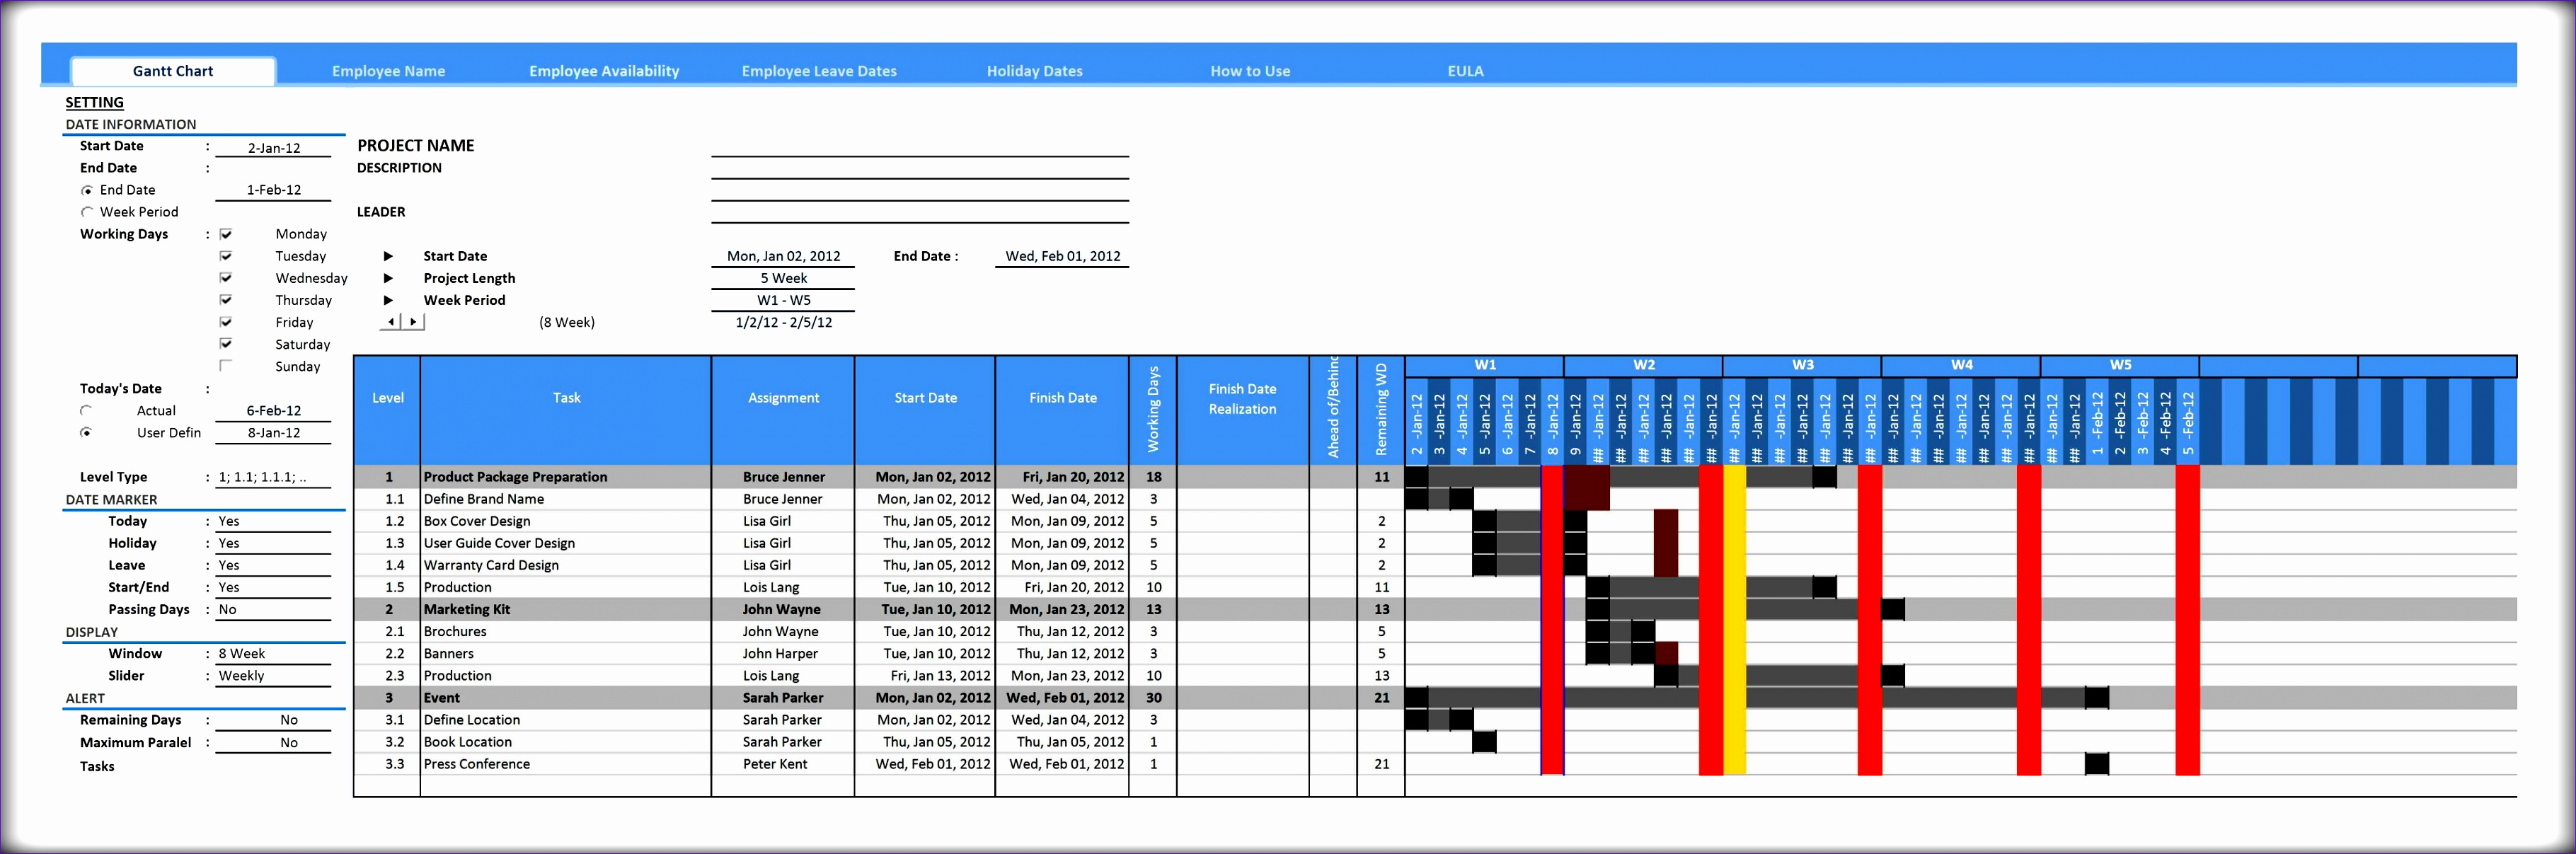 Pareto Chart Excel Template Free Gtbfl Inspirational Gantt Charts Excel Template Gantt Chart Template Excel Schedule